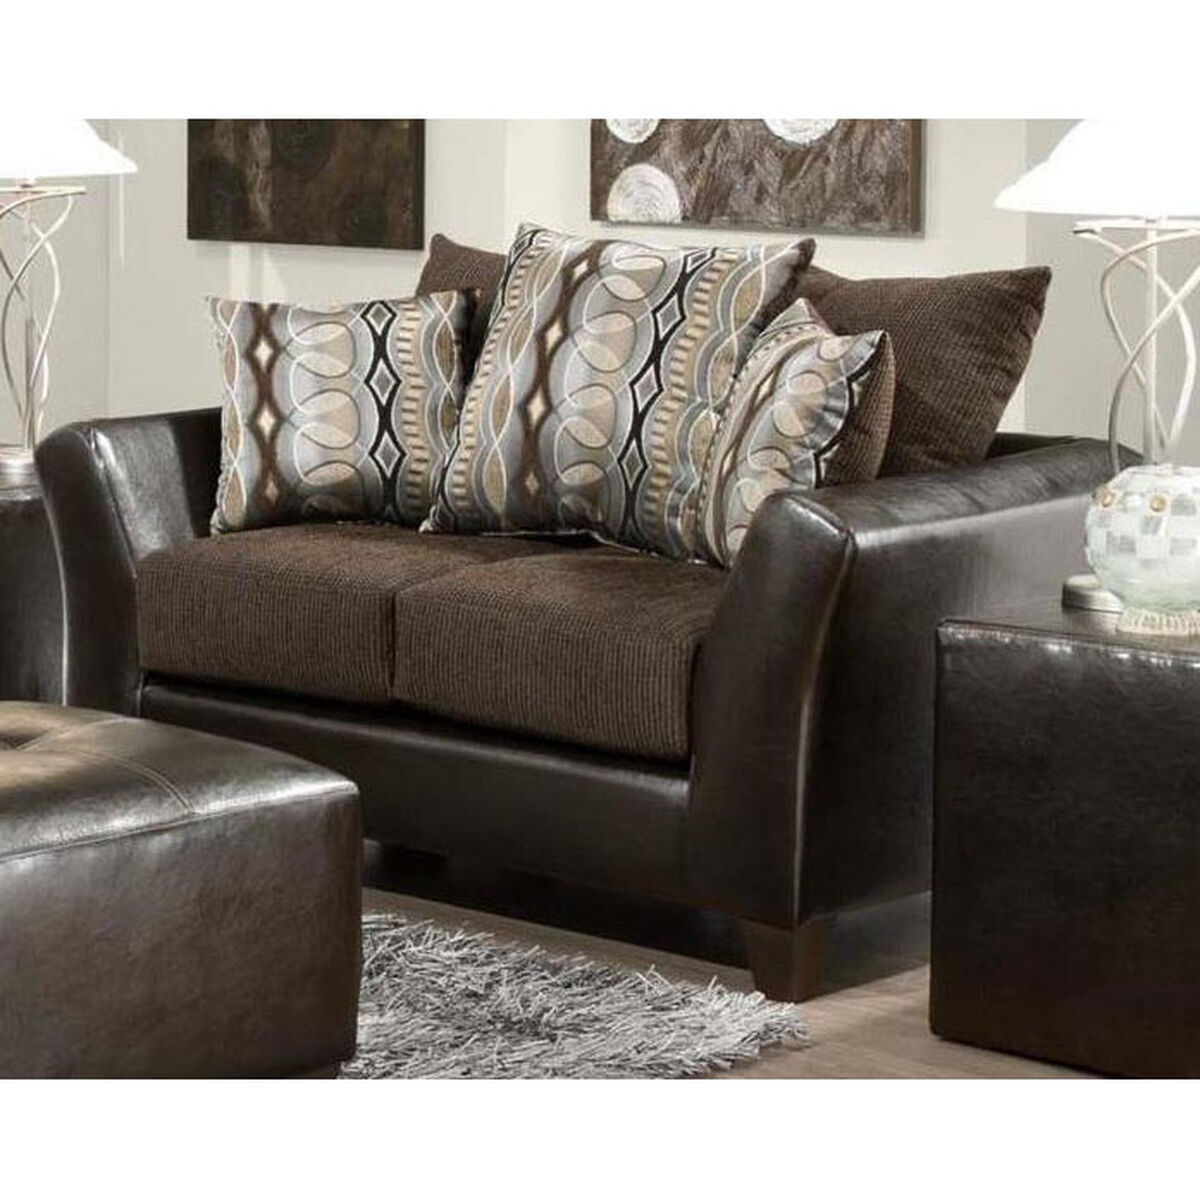 Leather fabric loveseat chocolate 424173 01 l for Home furniture sites